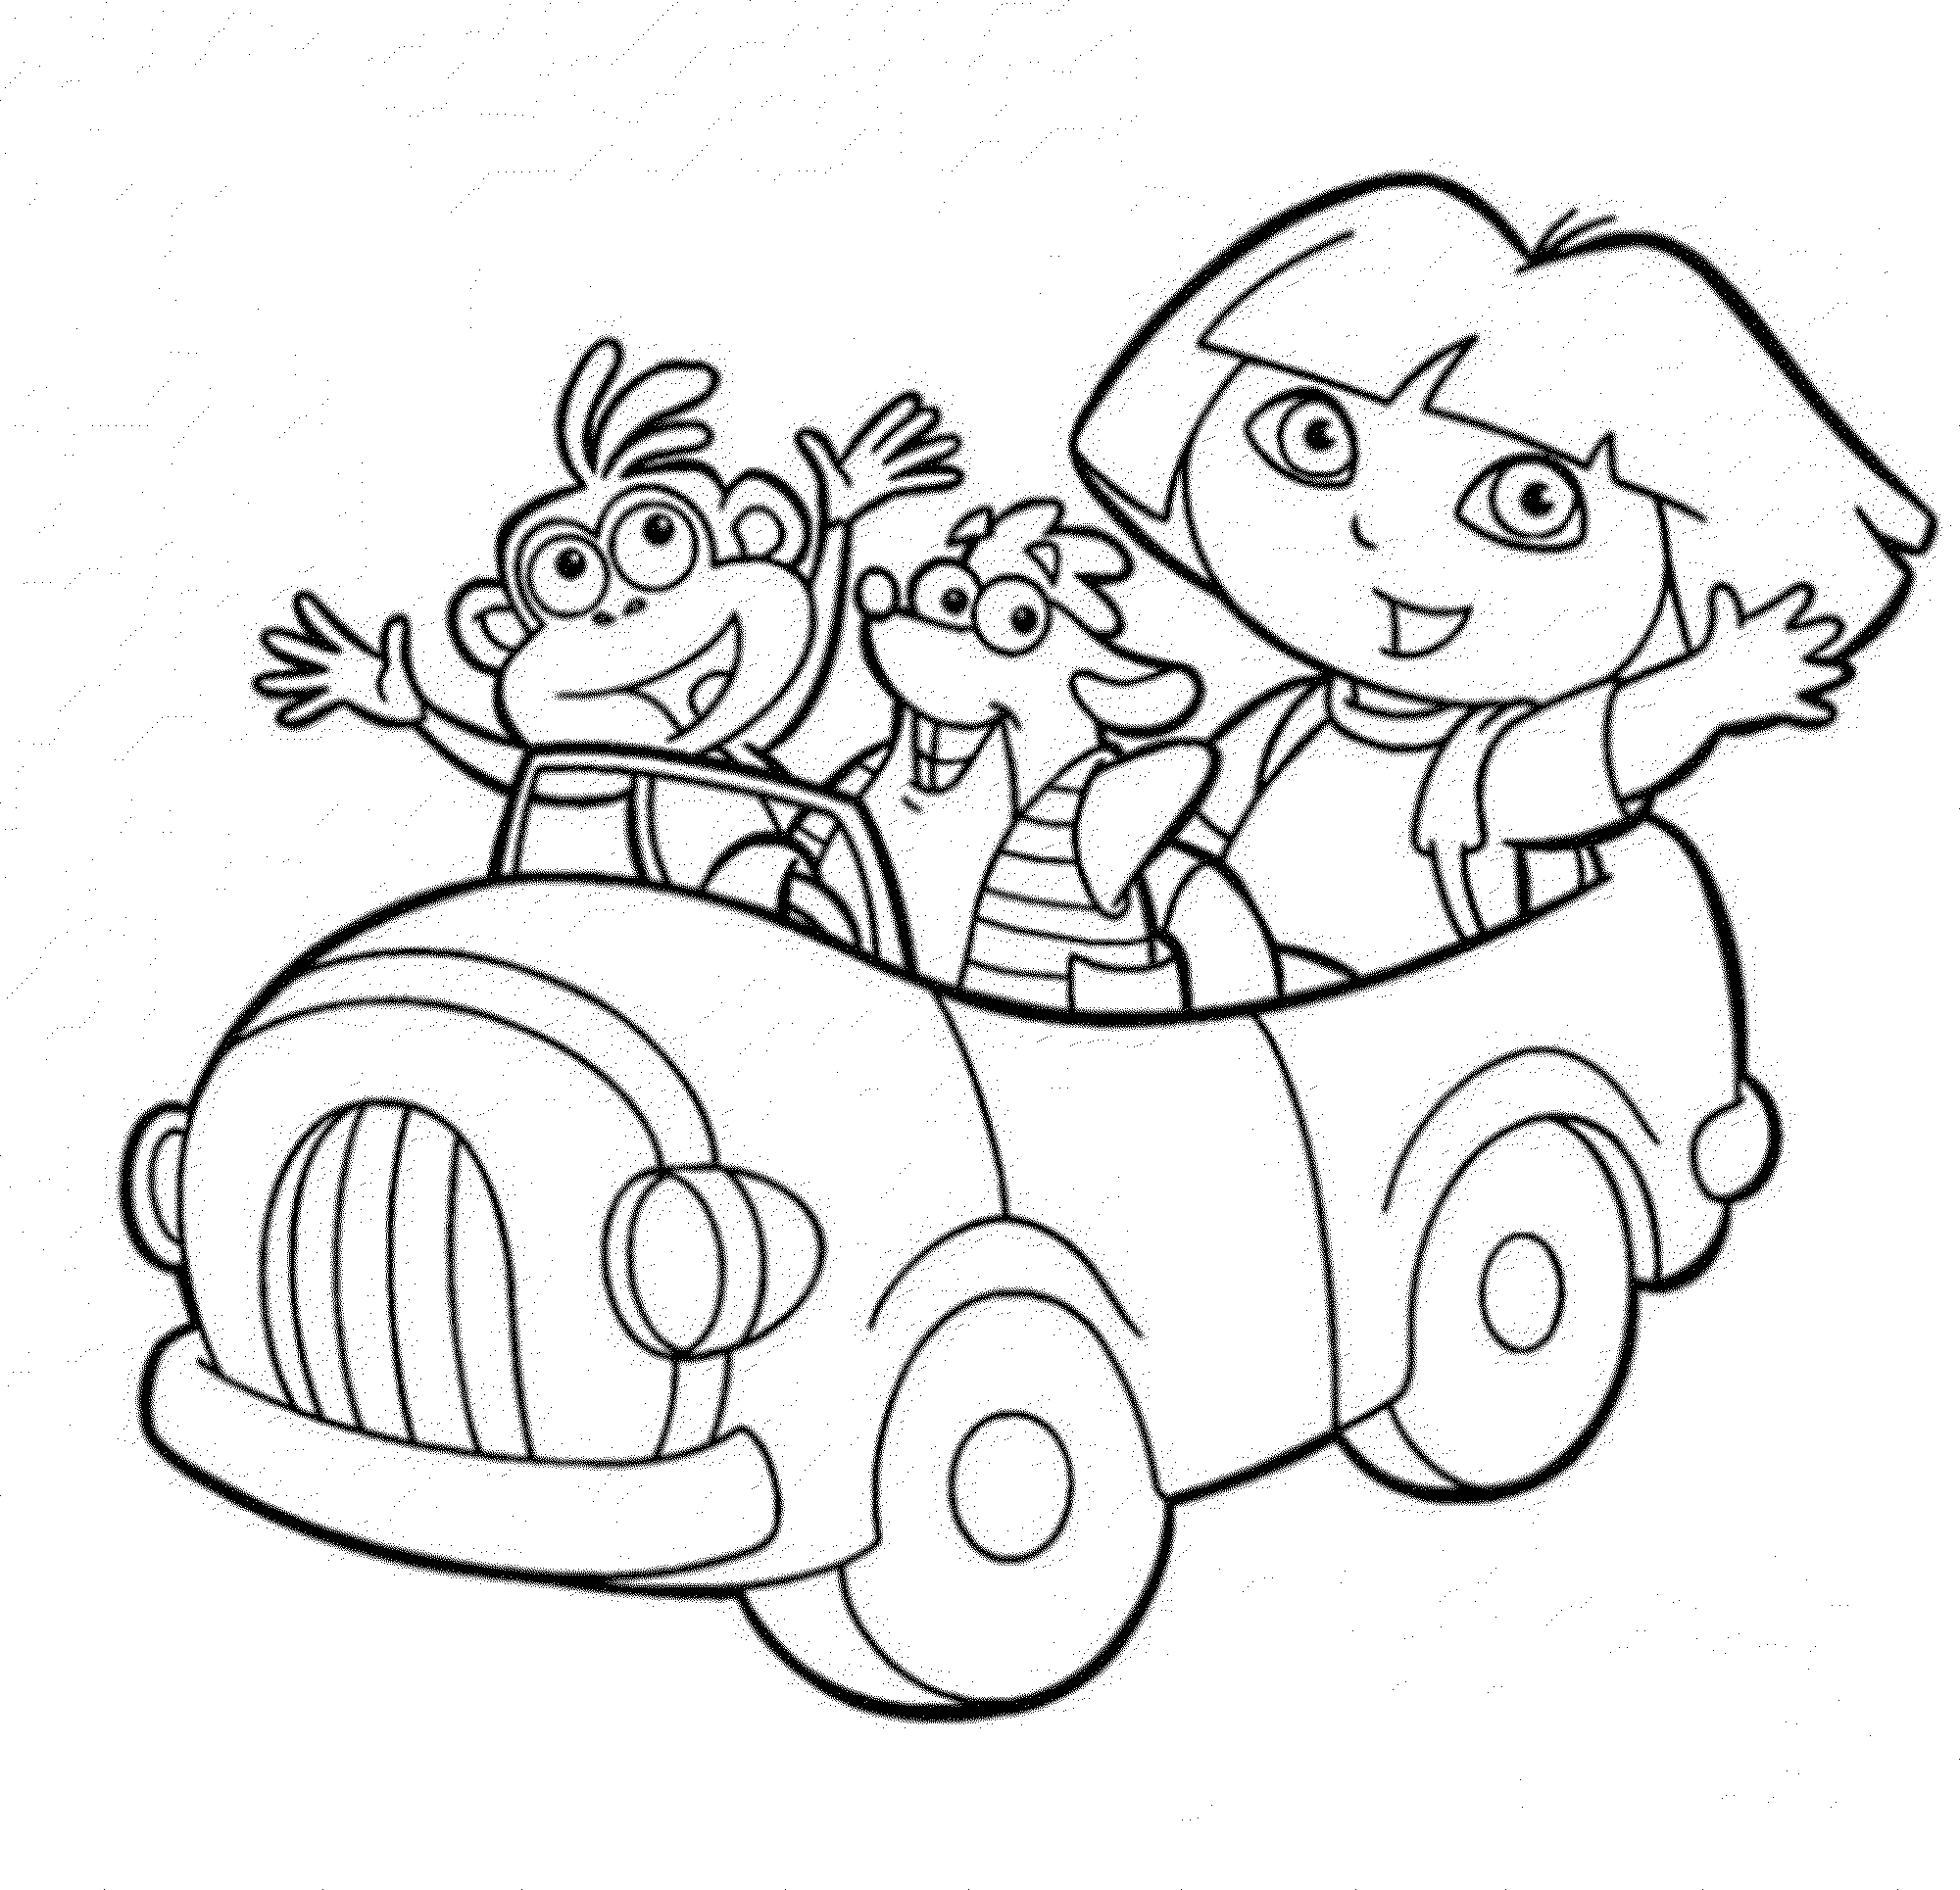 dora the explorer colouring pictures print download dora coloring pages to learn new things pictures the colouring explorer dora